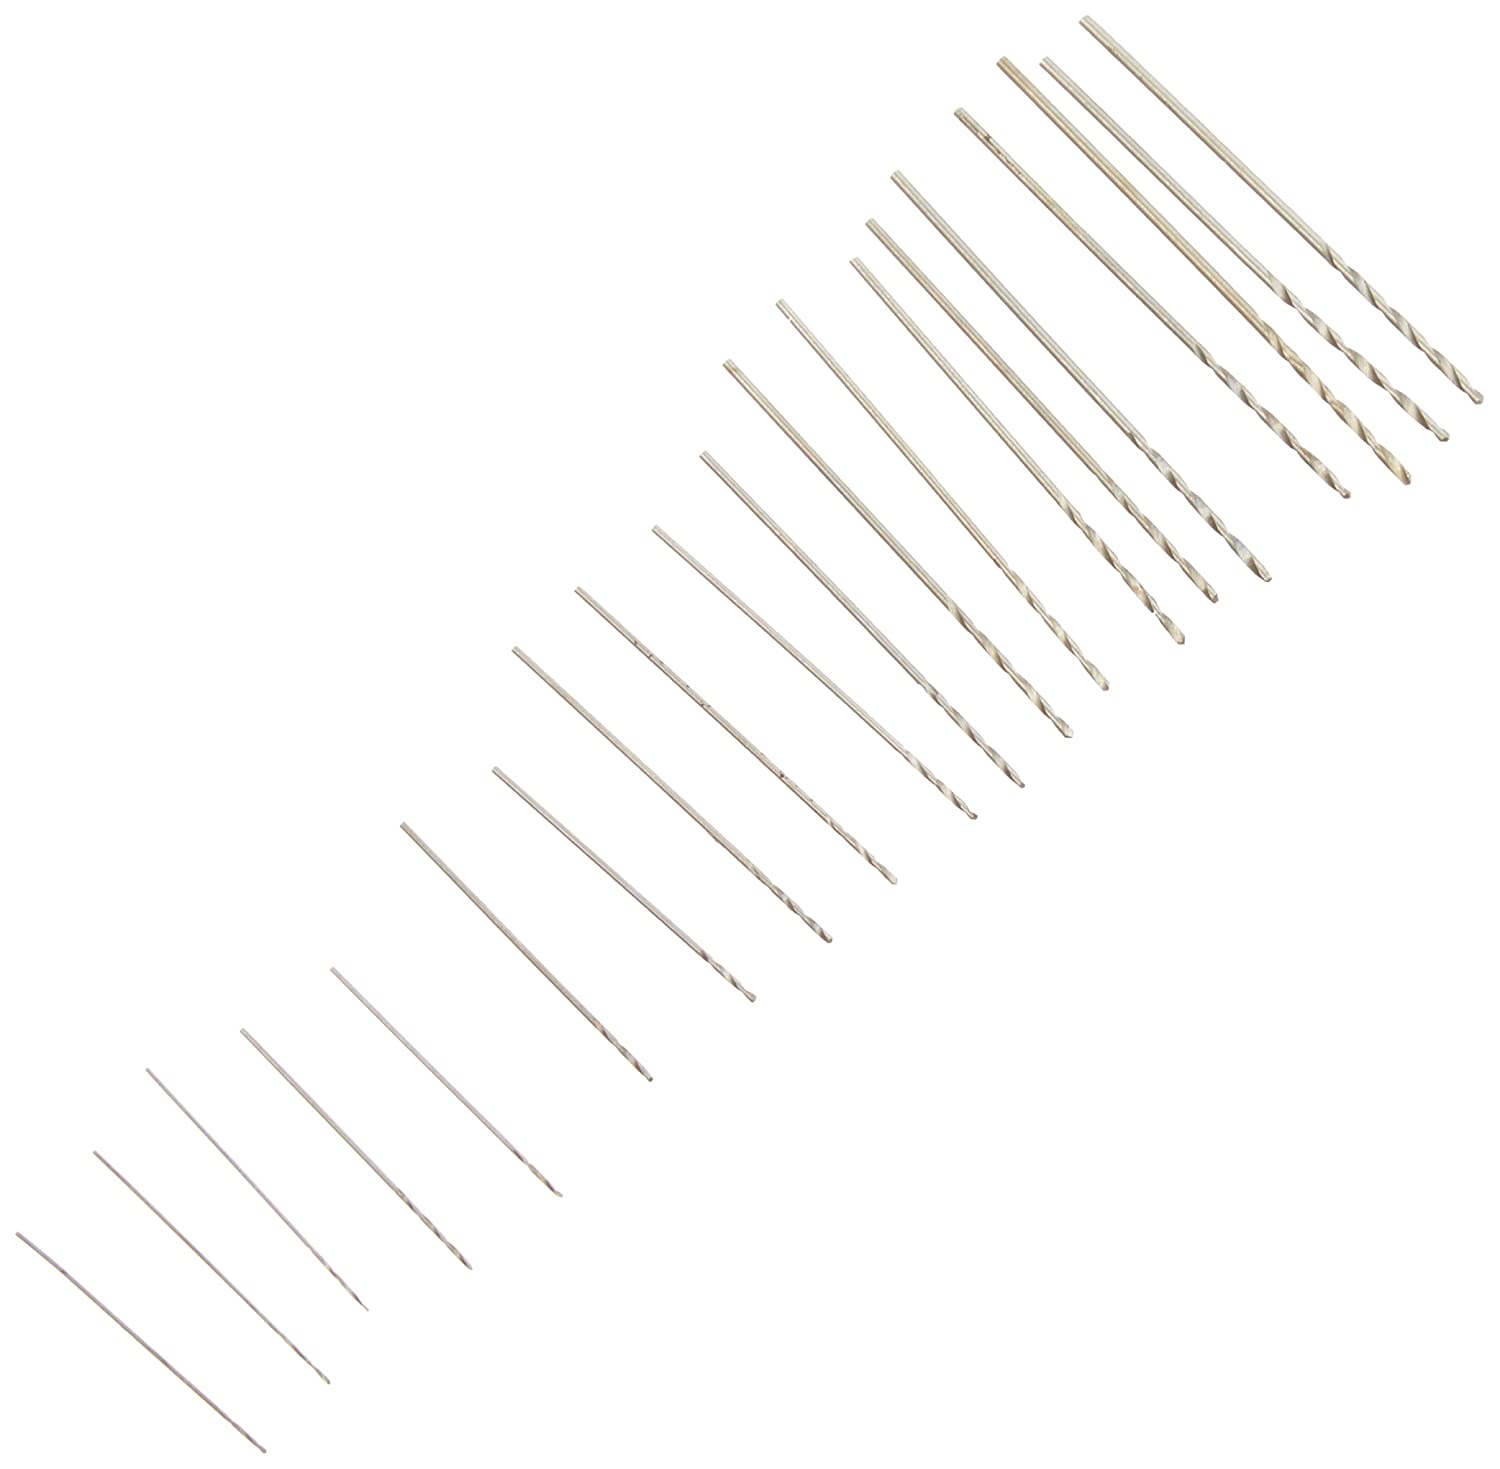 Kaufhof 06-00090 20 piece Tiny Small Drill Bits #61-80 Numbered Sizes High Speed Steel (HSS) Wire Gauge